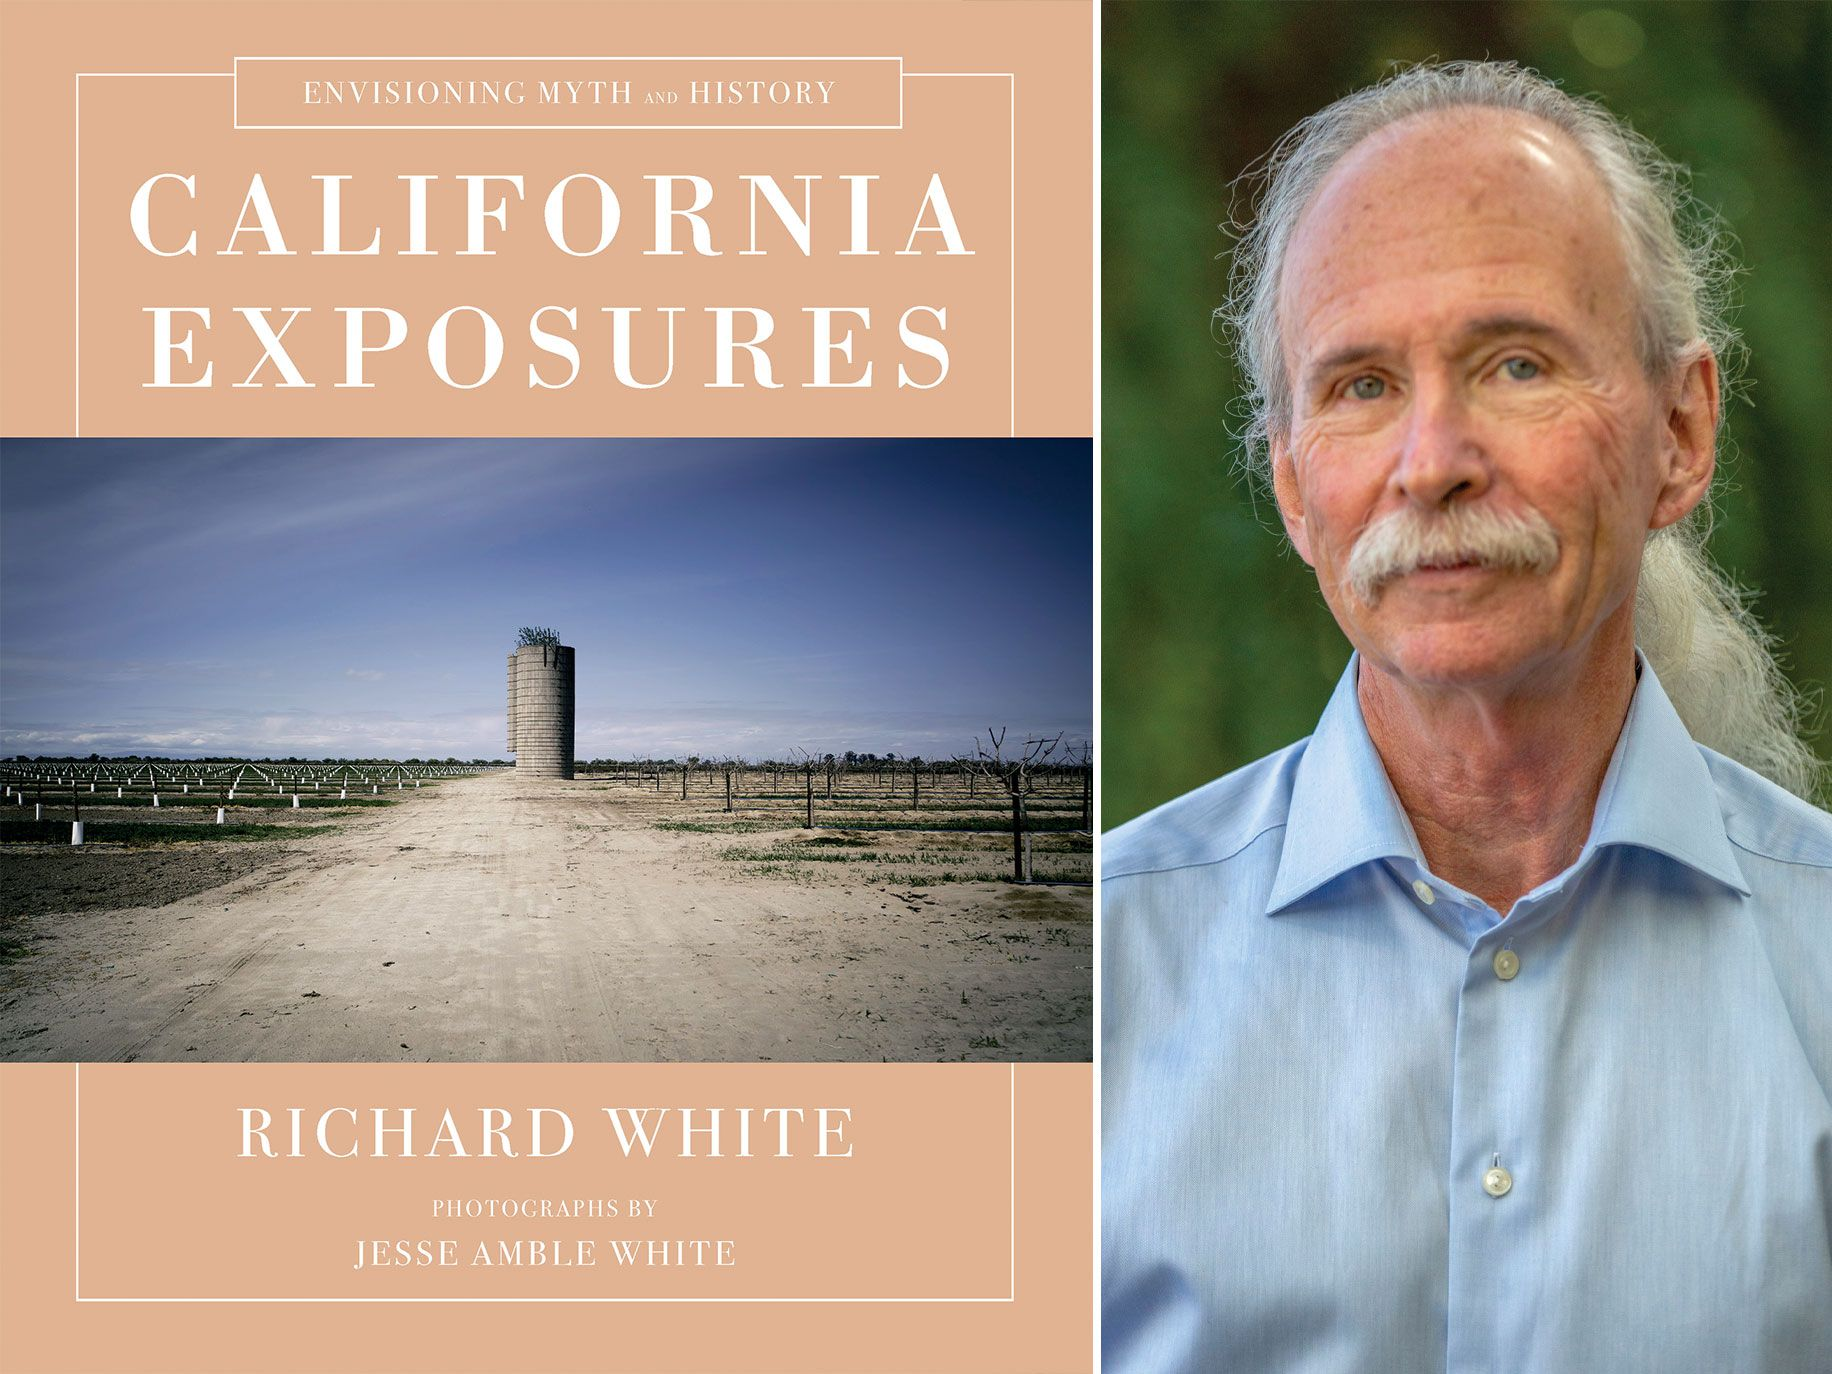 California Exposures by Richard White, with photographs by Jesse Amble White, W.W. Norton & Company, 352 pages, $45.